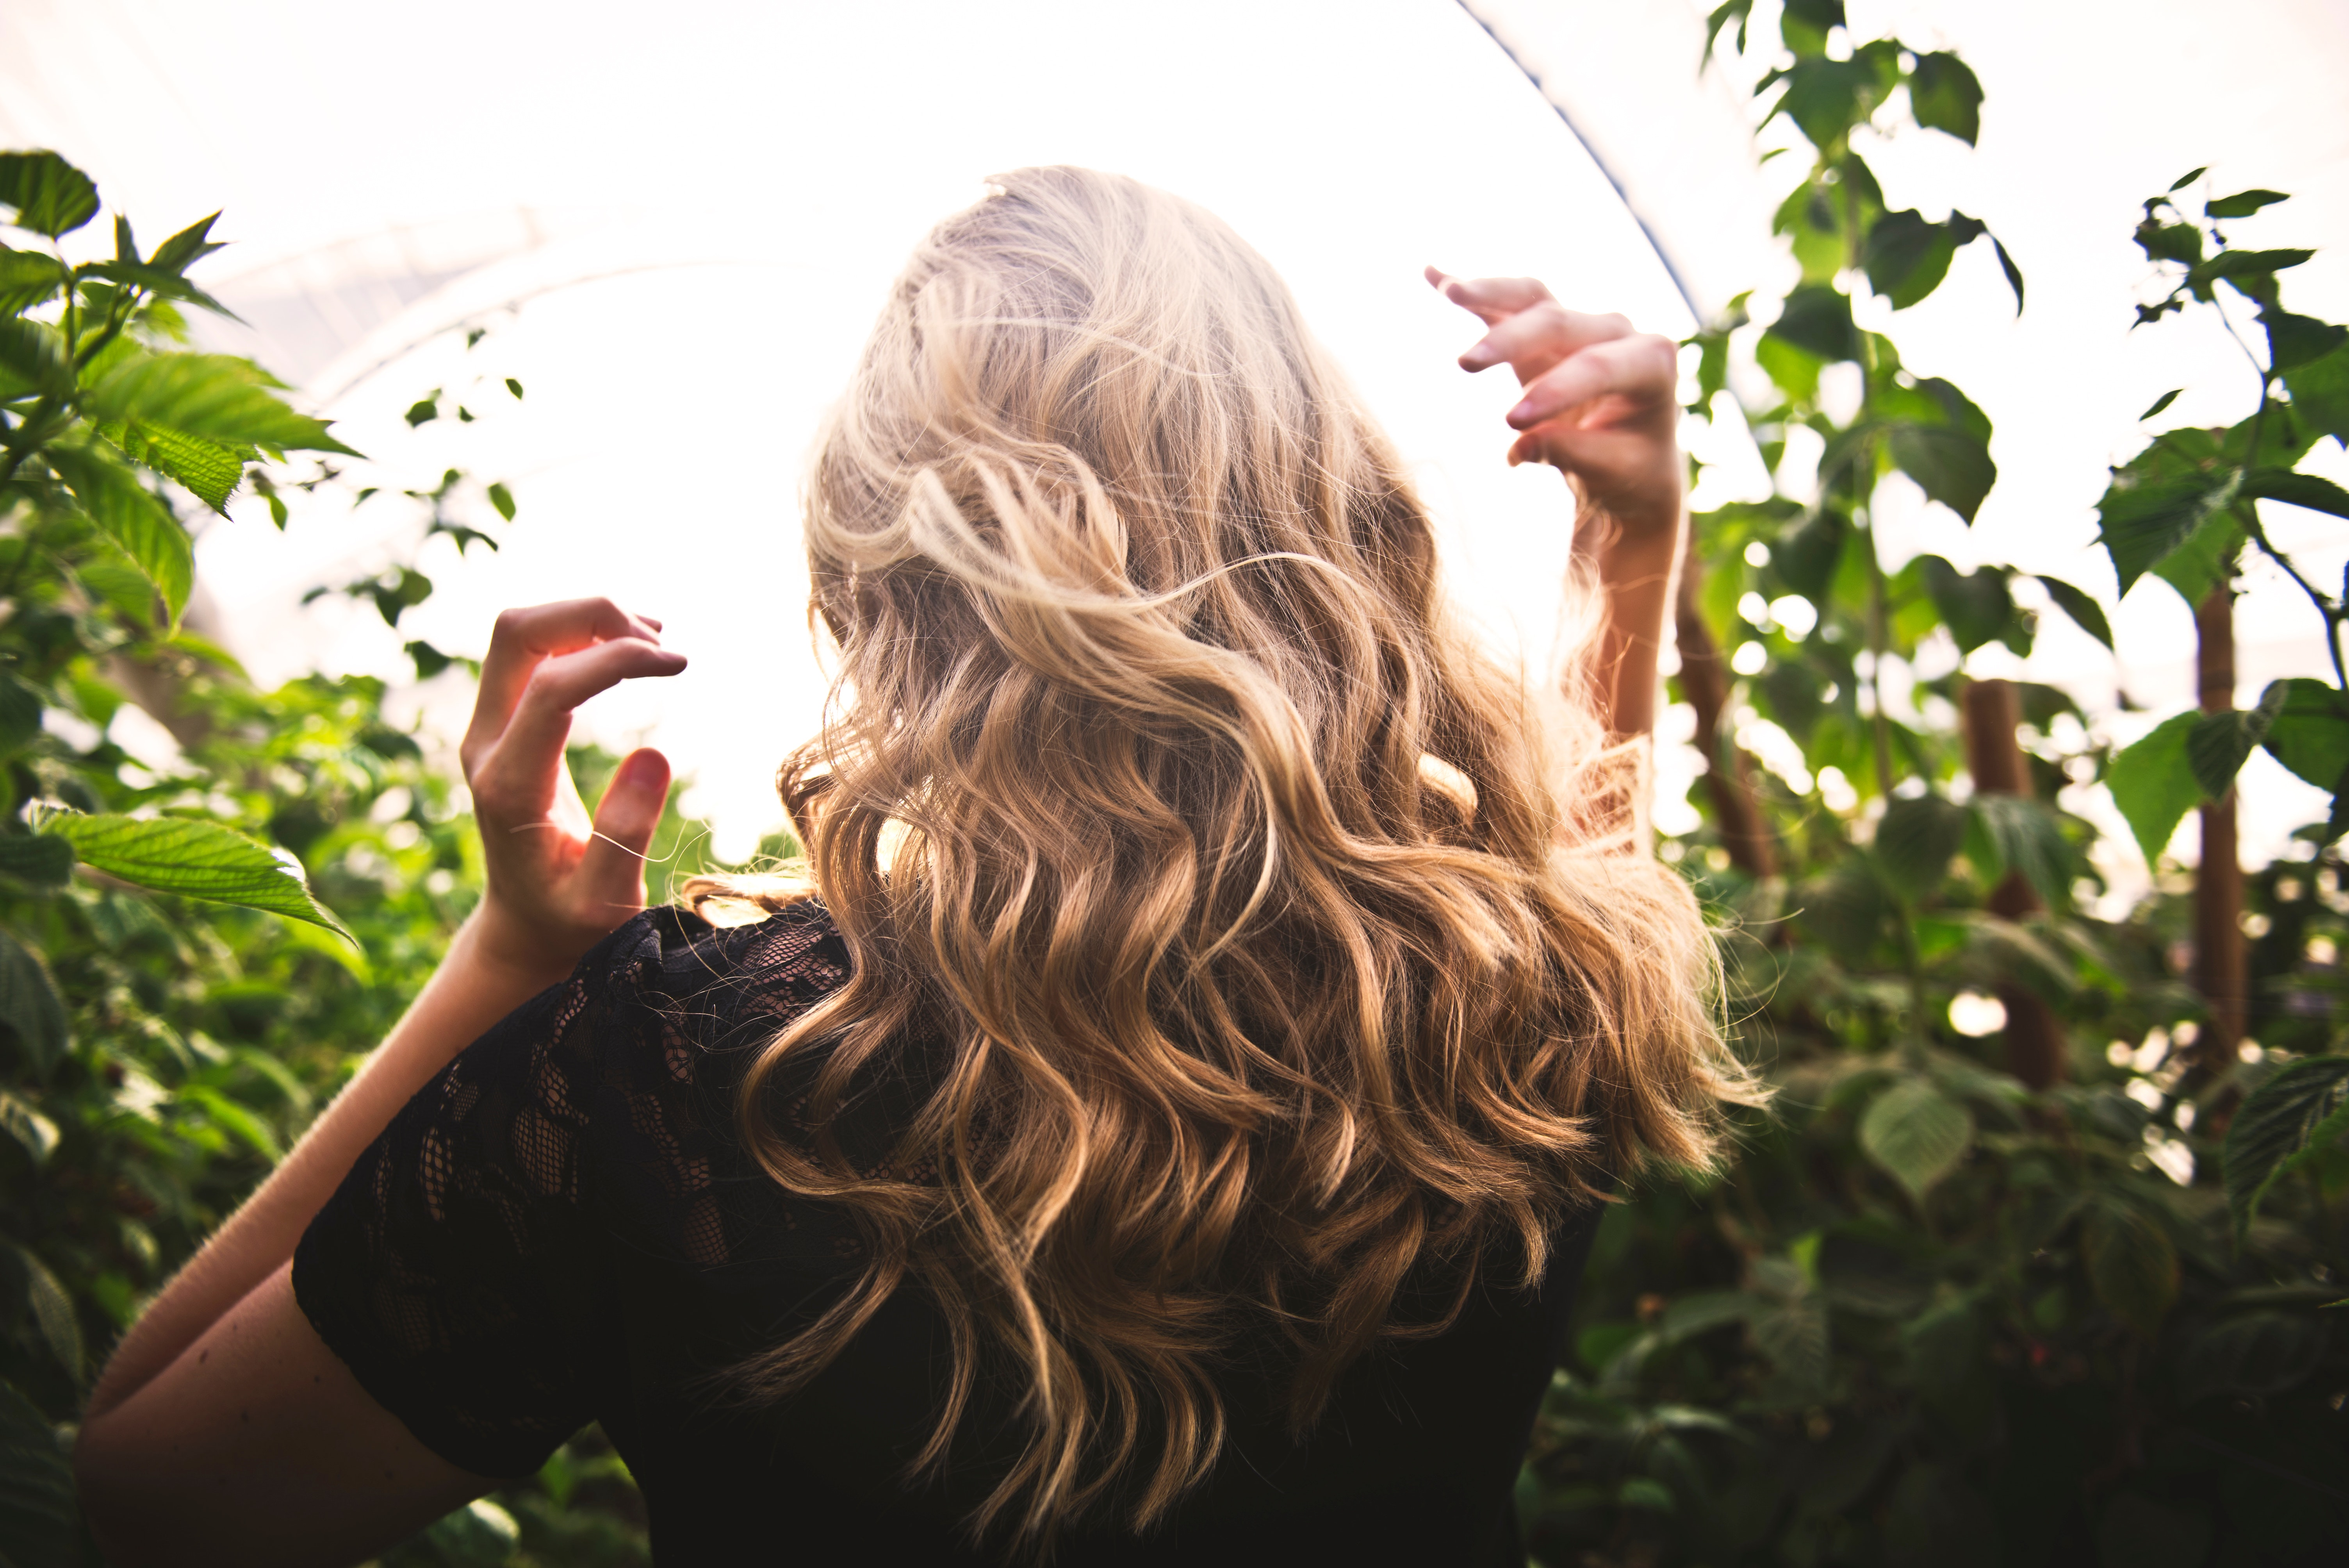 Hairstyles 2019: New And Gorgeous Summer Hair Trends